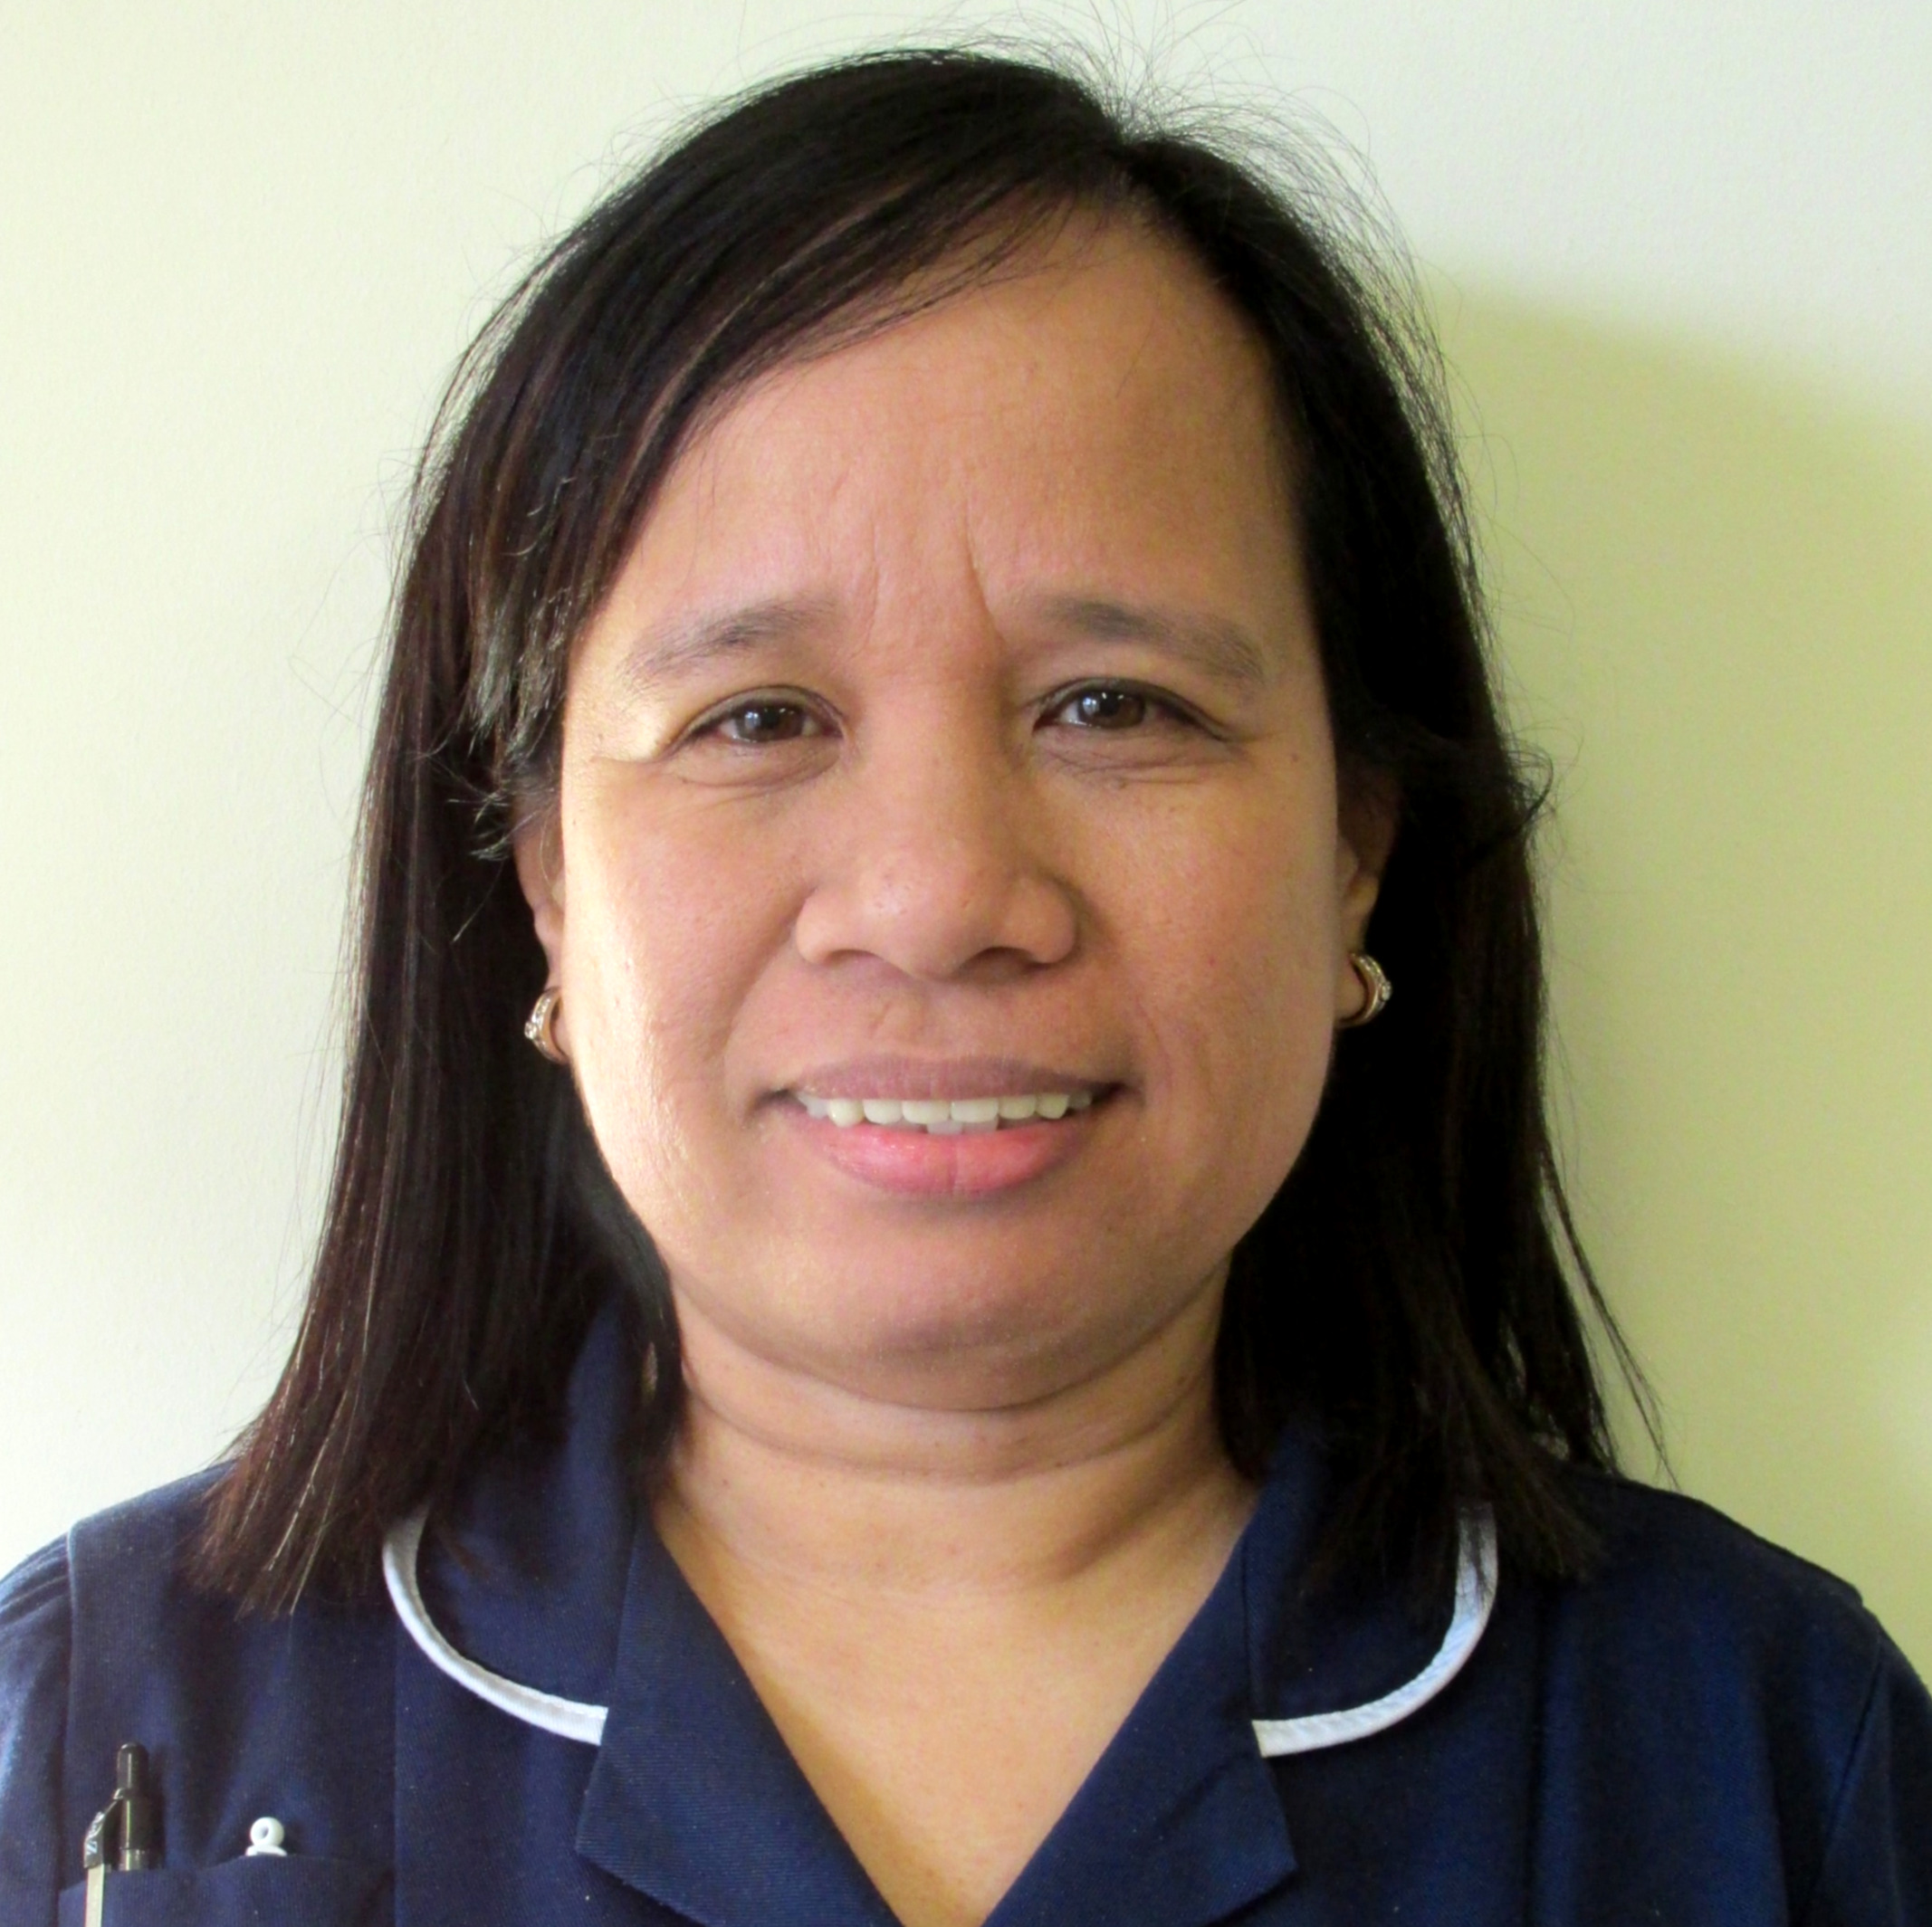 An Image of the Deputy Manager Jocelyn San Pedro